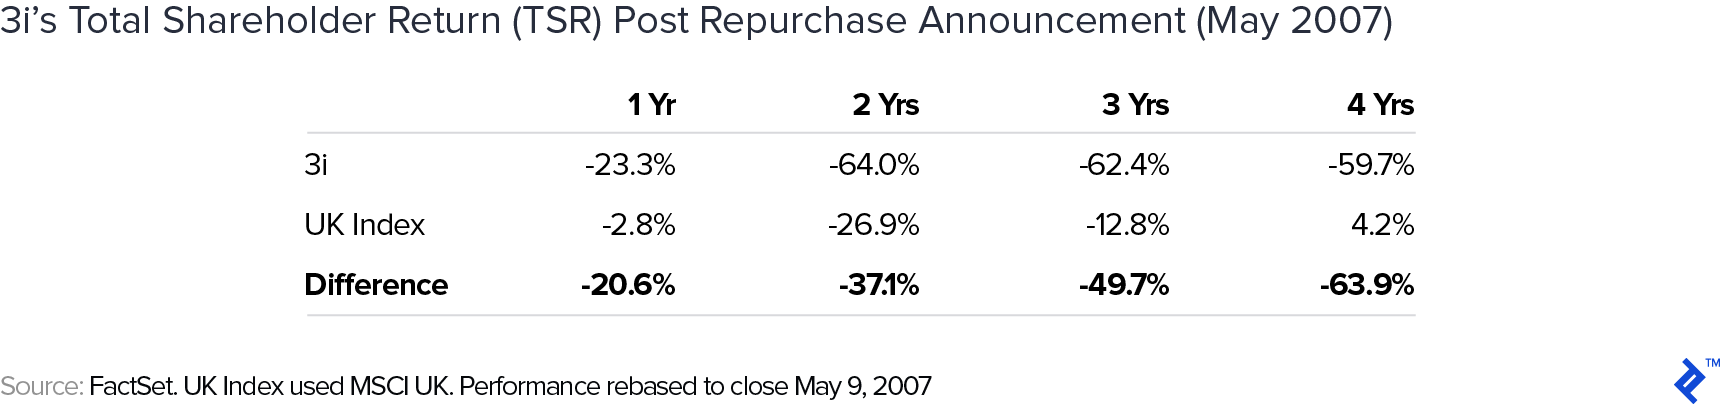 3i's total shareholder return (TSR) post repurchase announcement (May 2007)